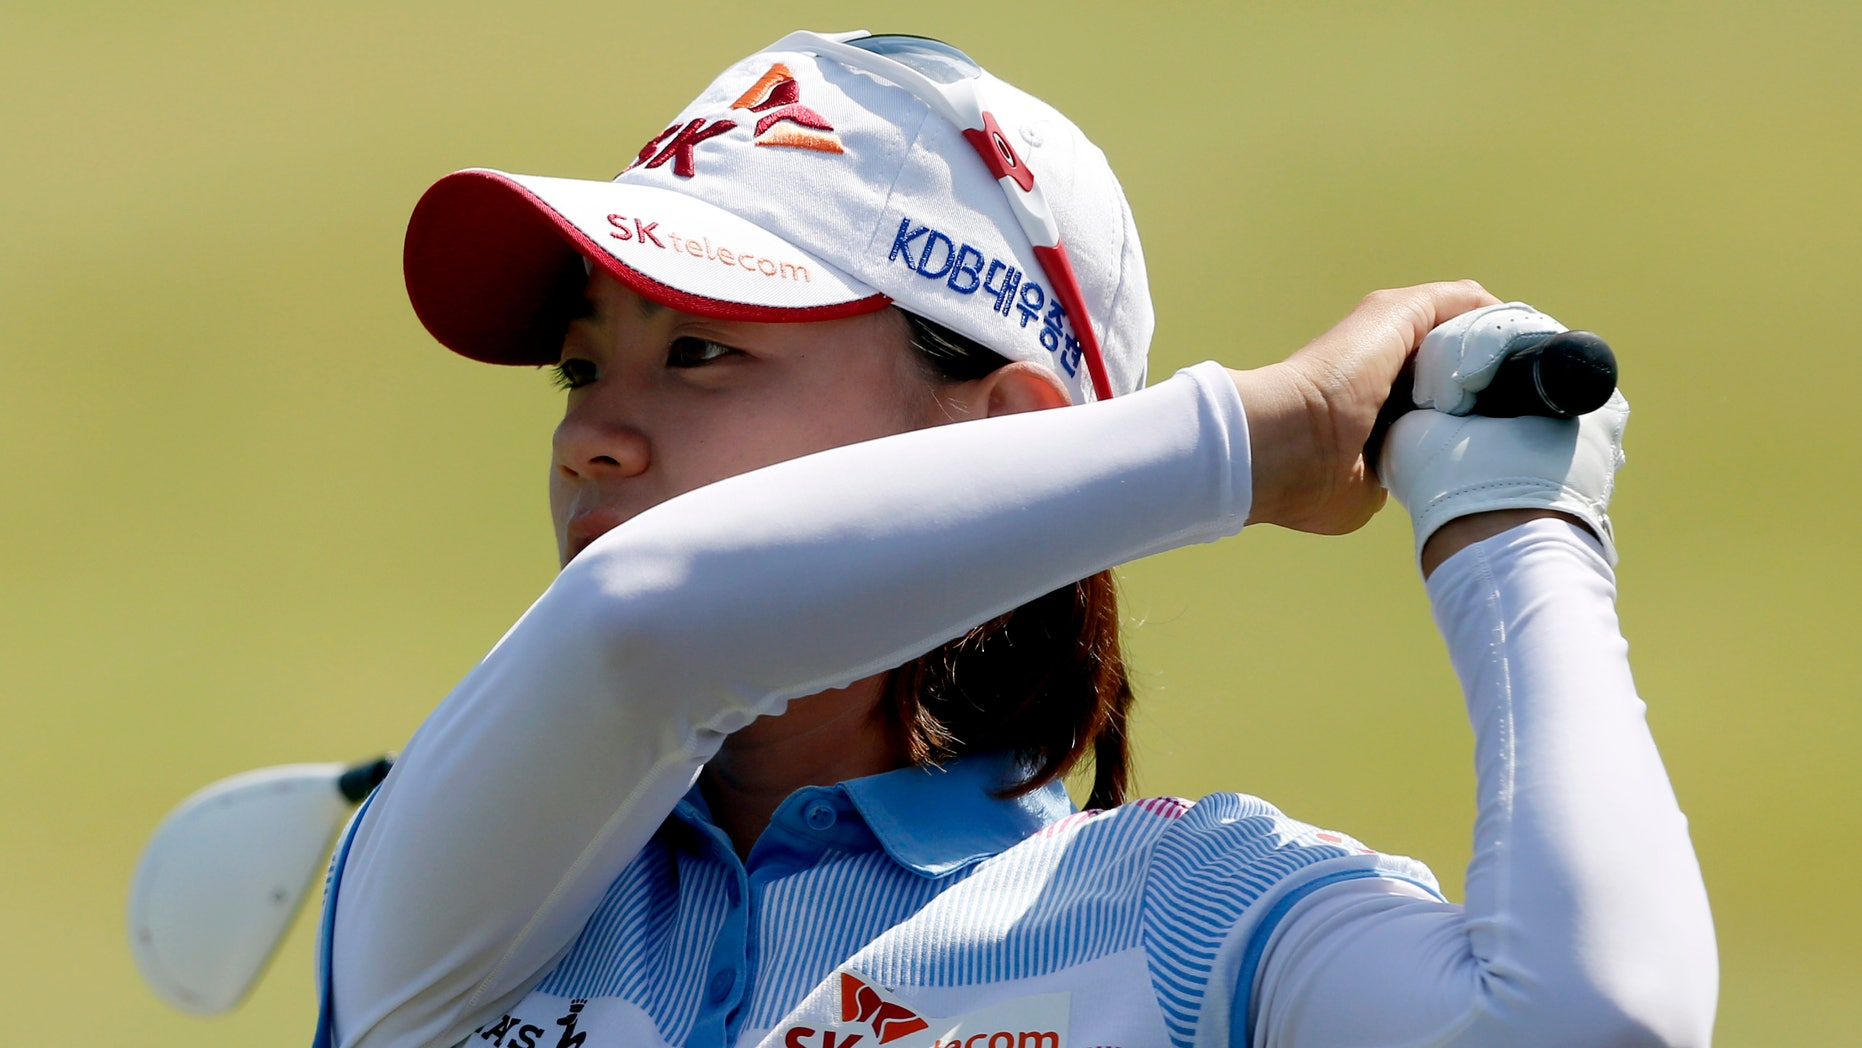 July 8, 2012: Na Yeon Choi, of South Korea, watches her tee shot on the 13th hole during the final round of the U.S. Women's Open golf tournament in Kohler, Wis.